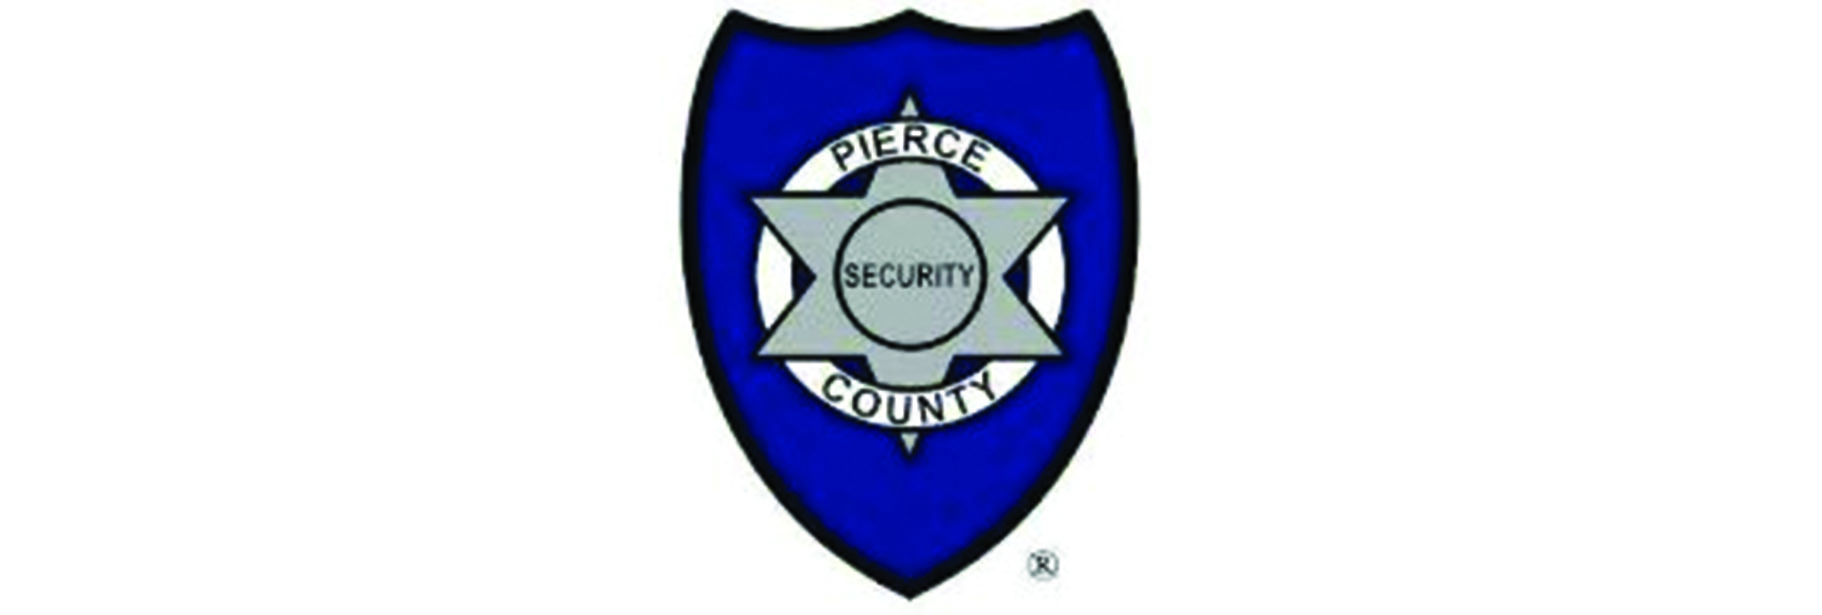 OrangeHRM Partners- Pierce County Security Inc.